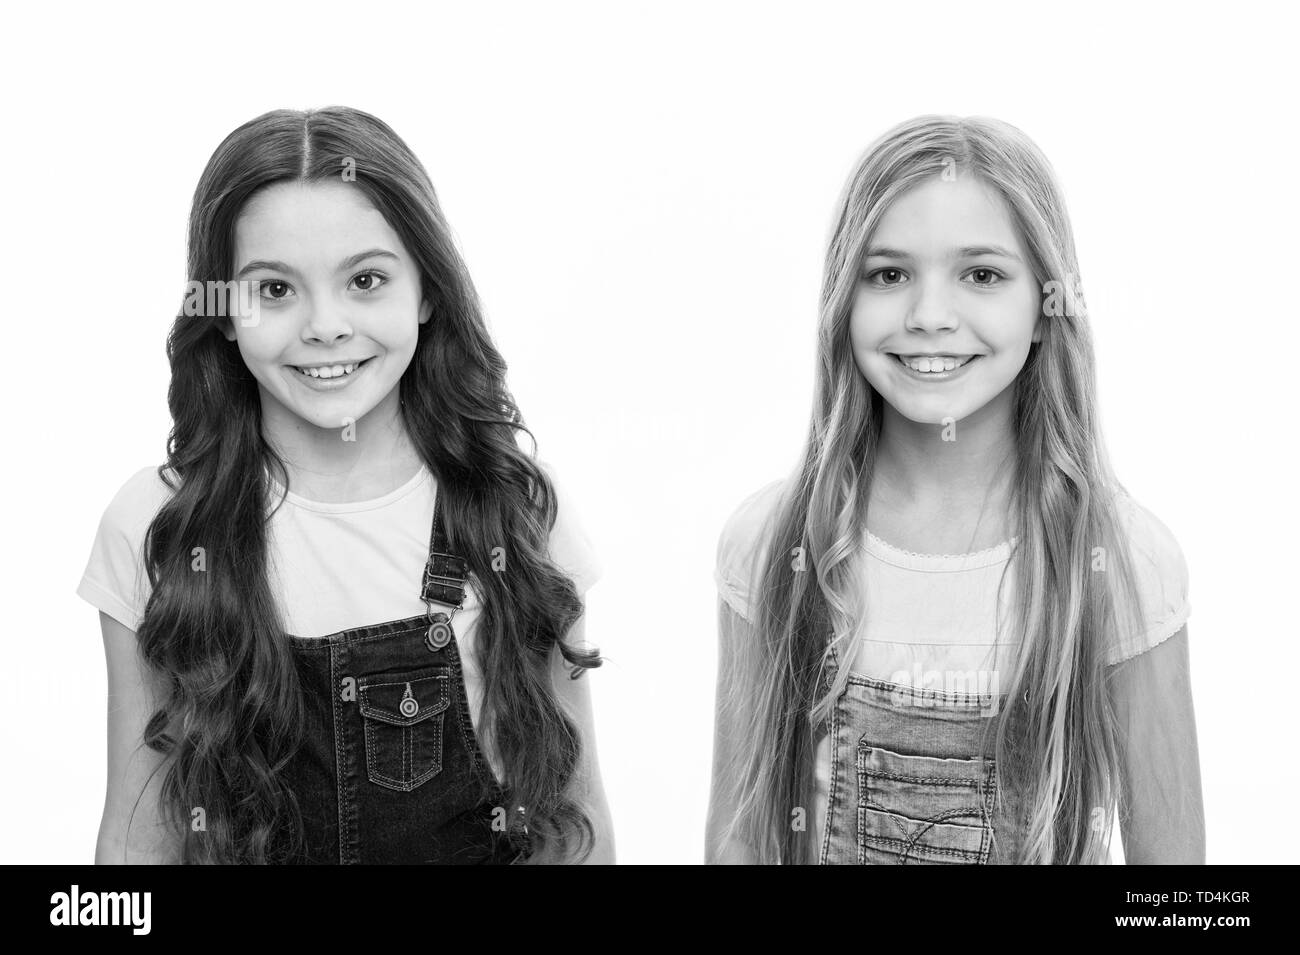 Natural beauty. Healthy and shiny hair. Kid cute child with long adorable hairstyle. Hair care tips and professional treatment. Long hair feminine attribute. Girls usually let their hair grow long. - Stock Image